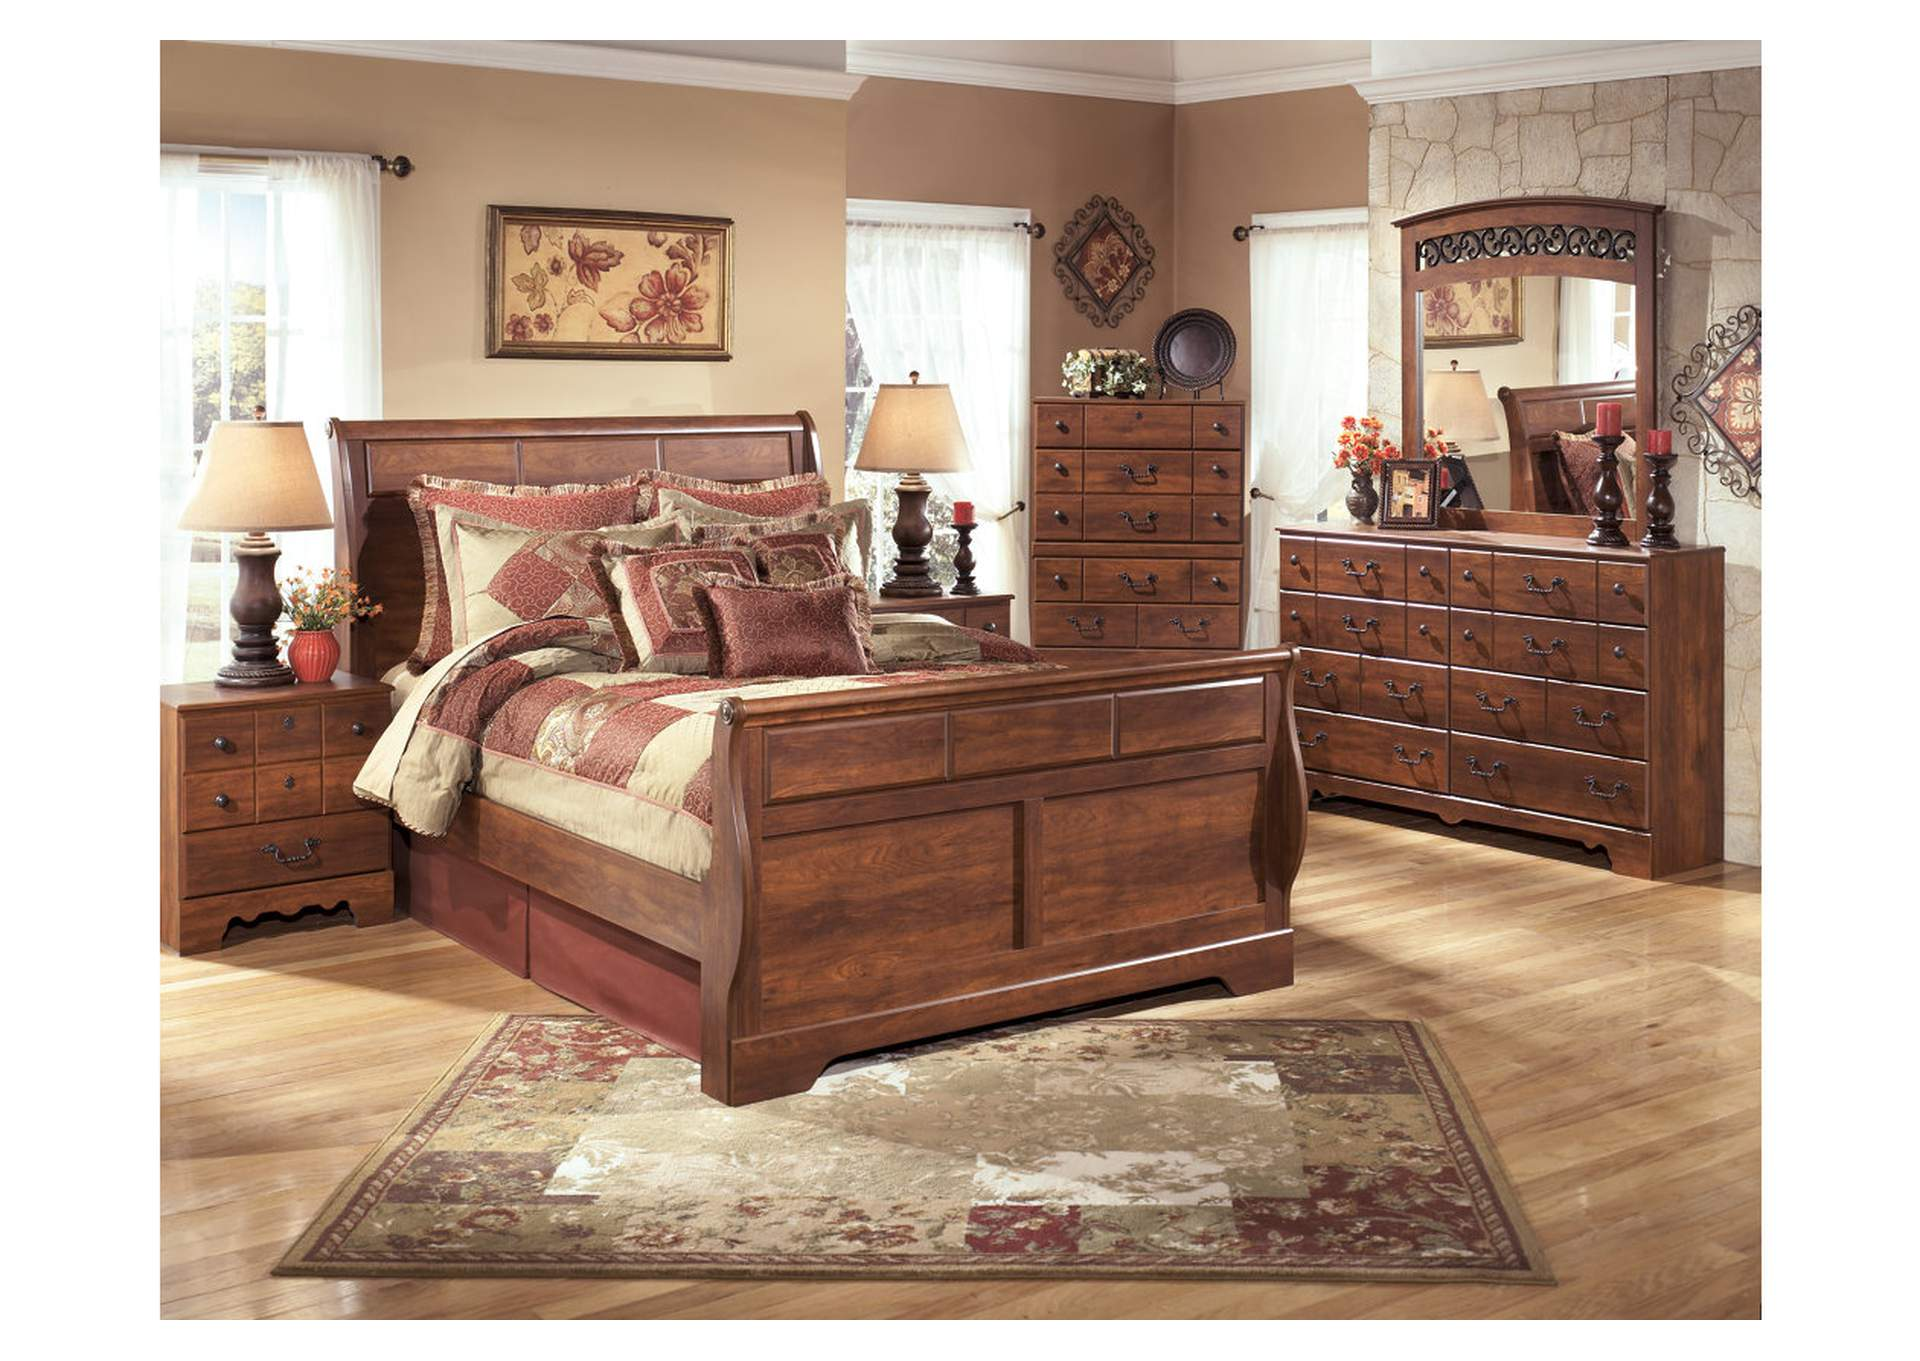 Mattress World Furniture Philadelphia Pa Timberline Queen Sleigh Bed